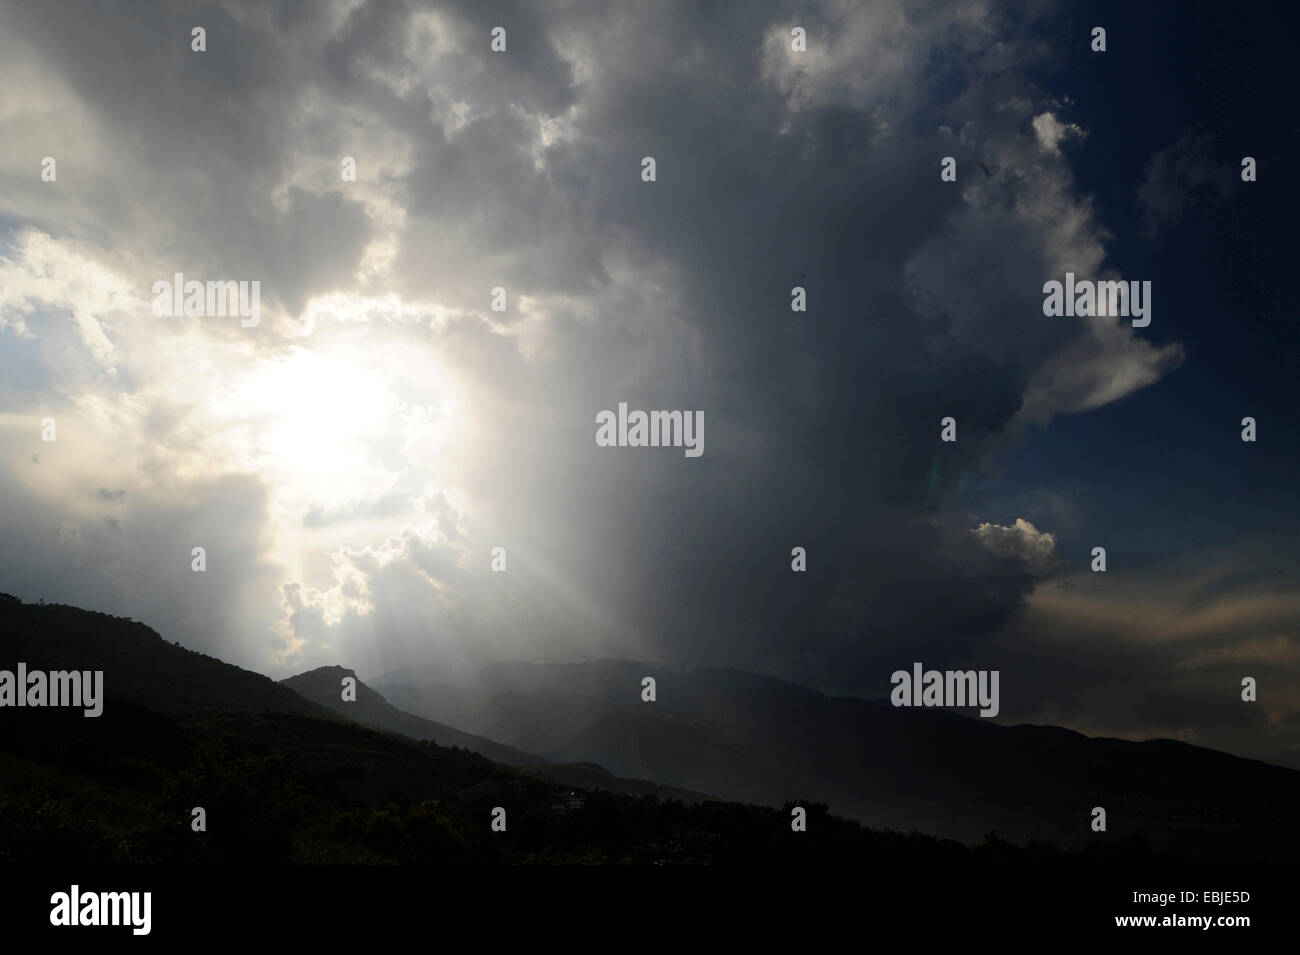 storm clouds over Mount Olympus - the gods are angry, Greece, Macedonia, Olymp - Stock Image